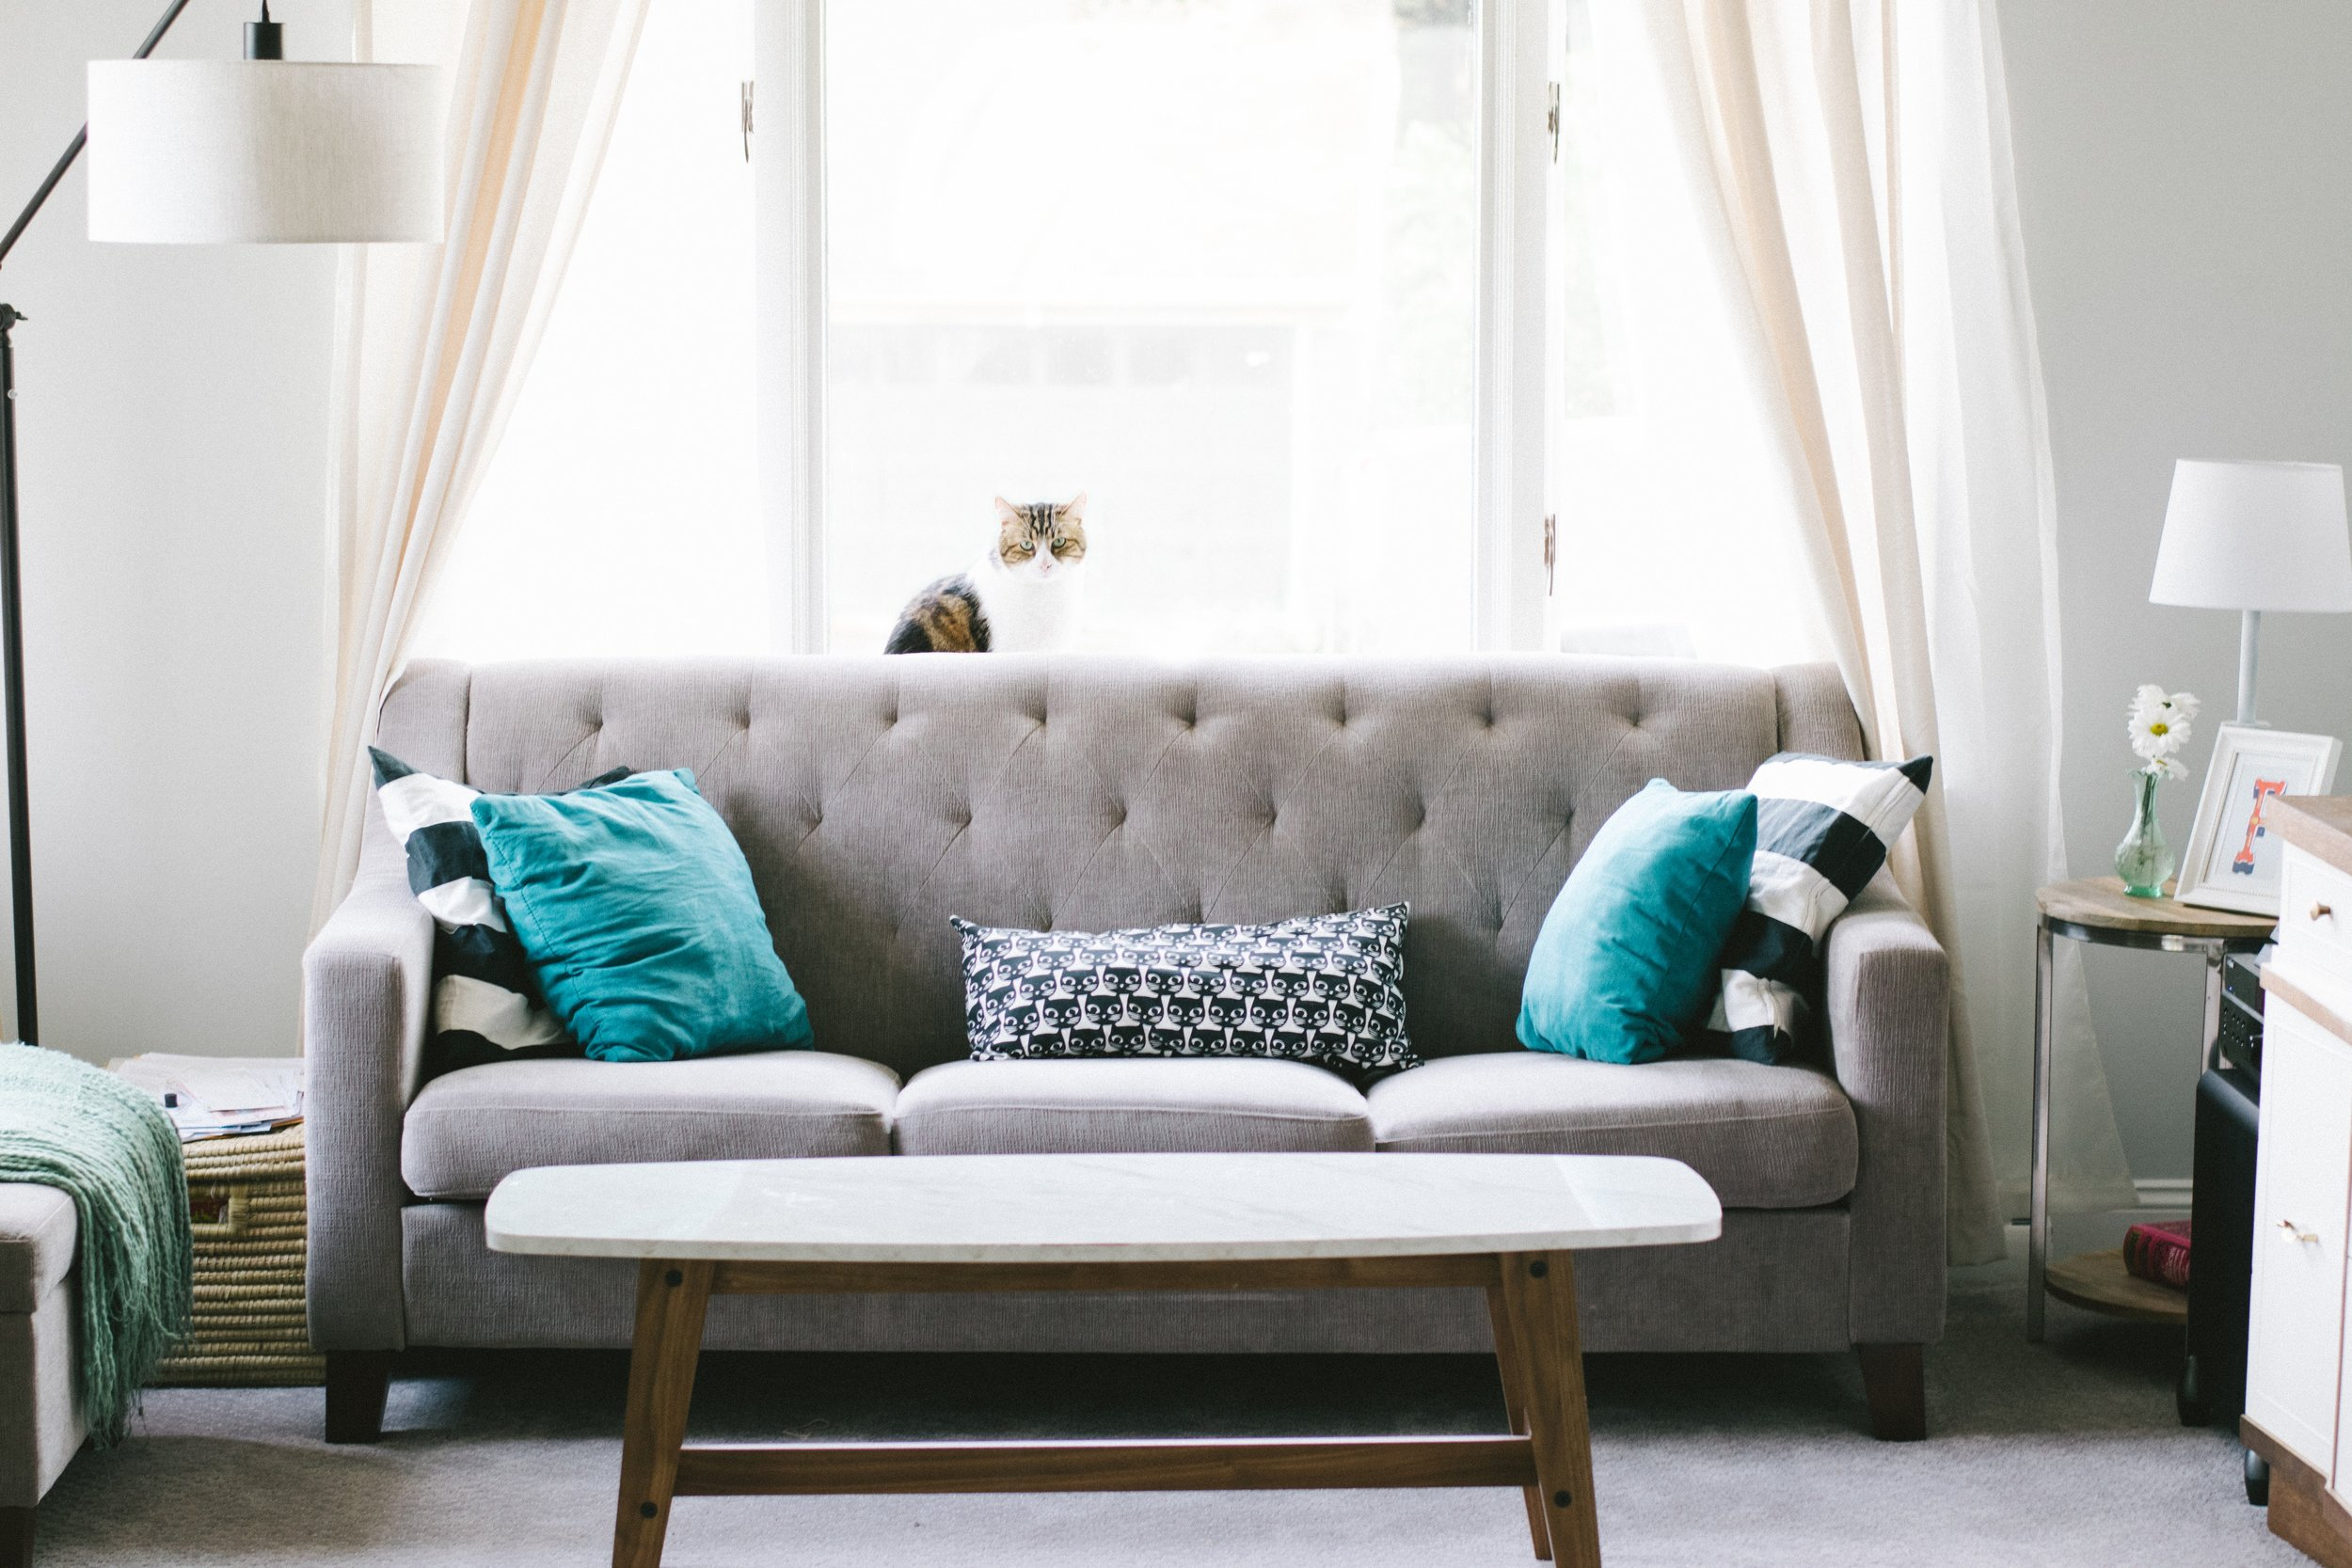 upholstery-cleaning-columbia-heights.jpg